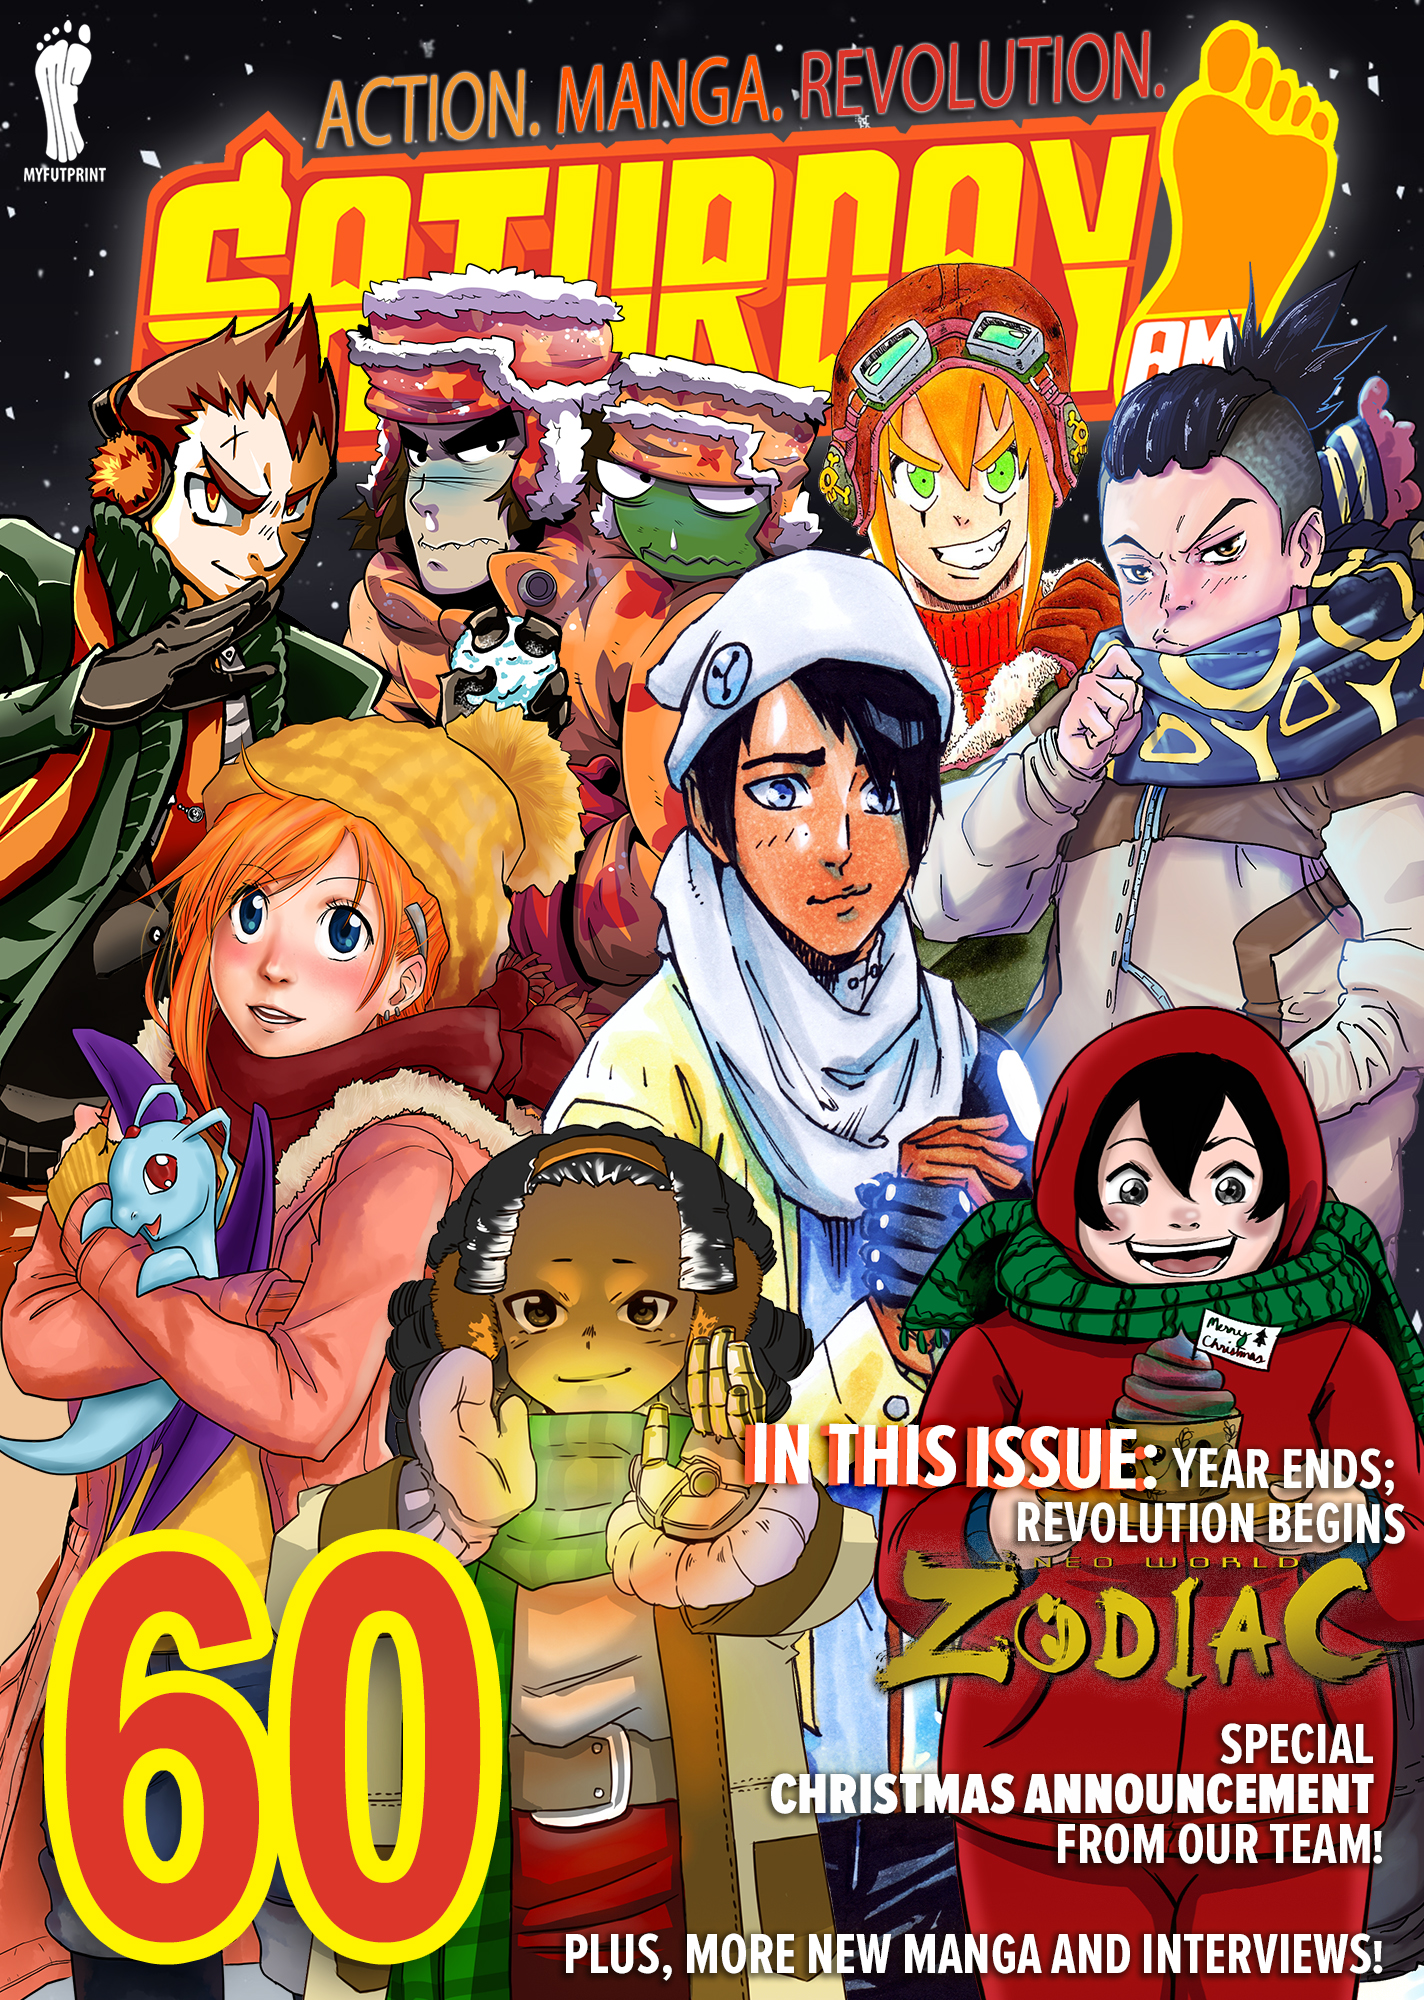 Ou latest issue features a jam cover with over 7 of our artists like Whyt Manga and all of our top manga webcomic series like CLOCK STRIKER